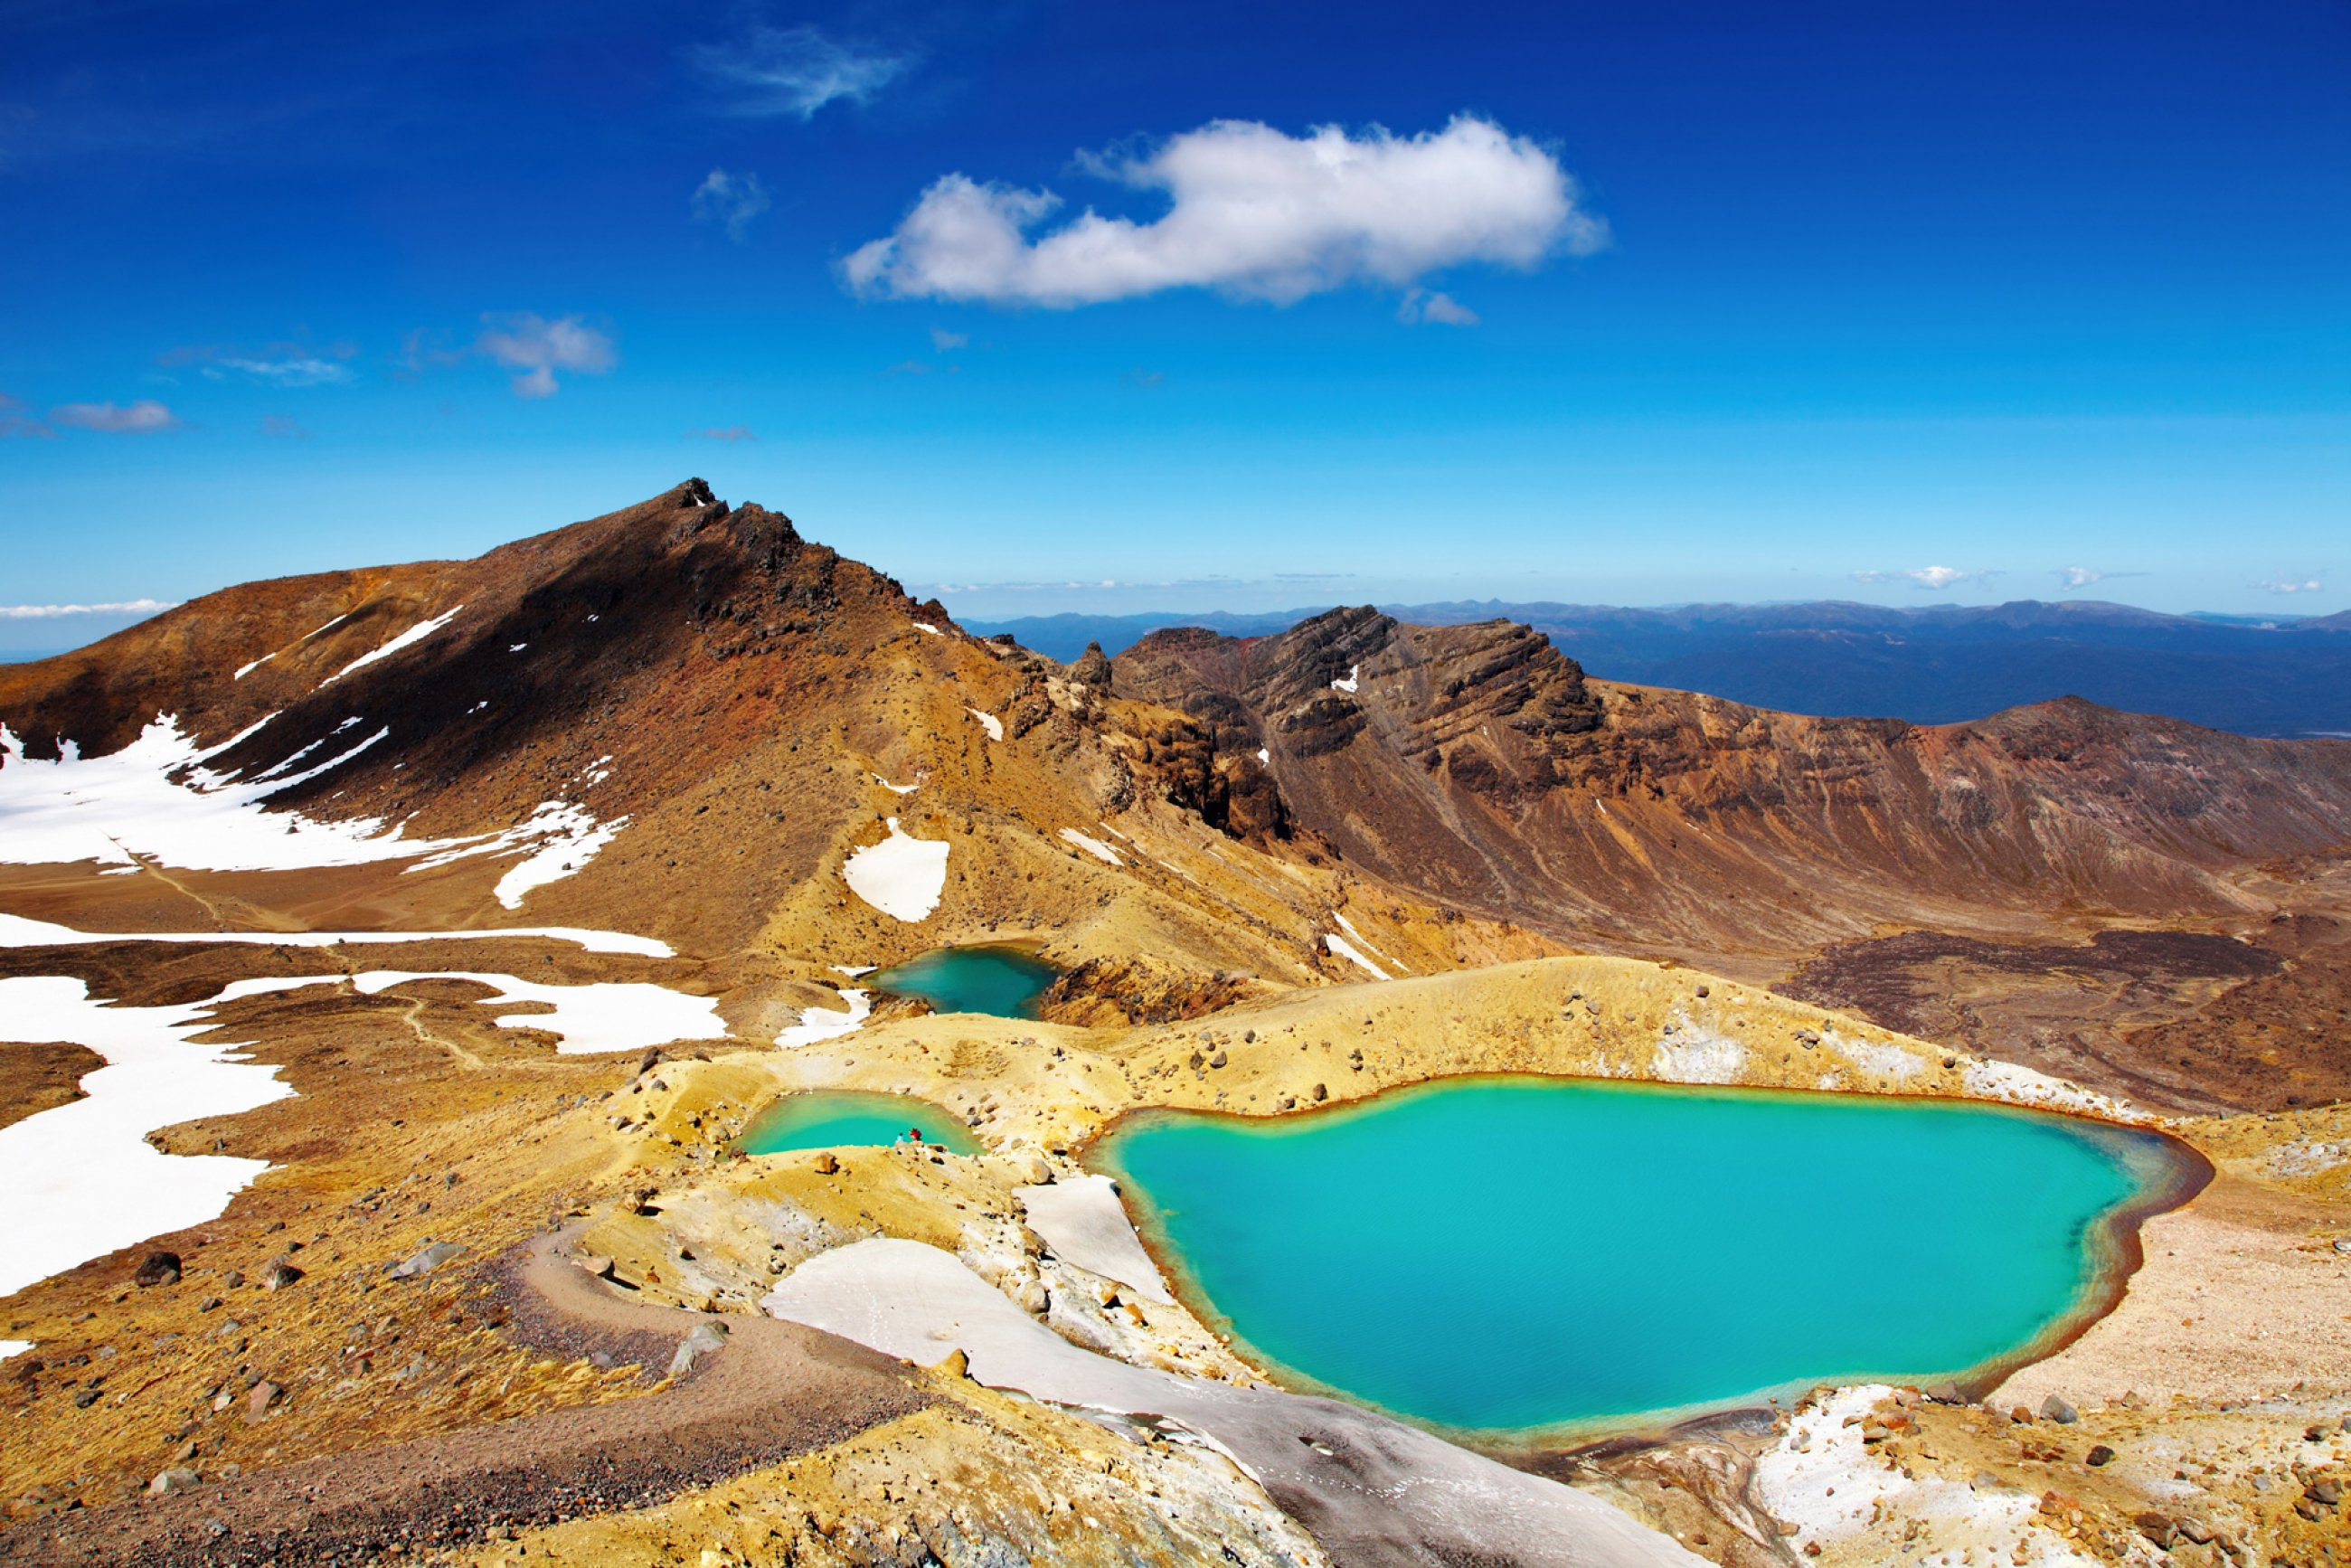 https://bubo.sk/uploads/galleries/5033/tongariro-shutterstock-35700307-1-.jpg